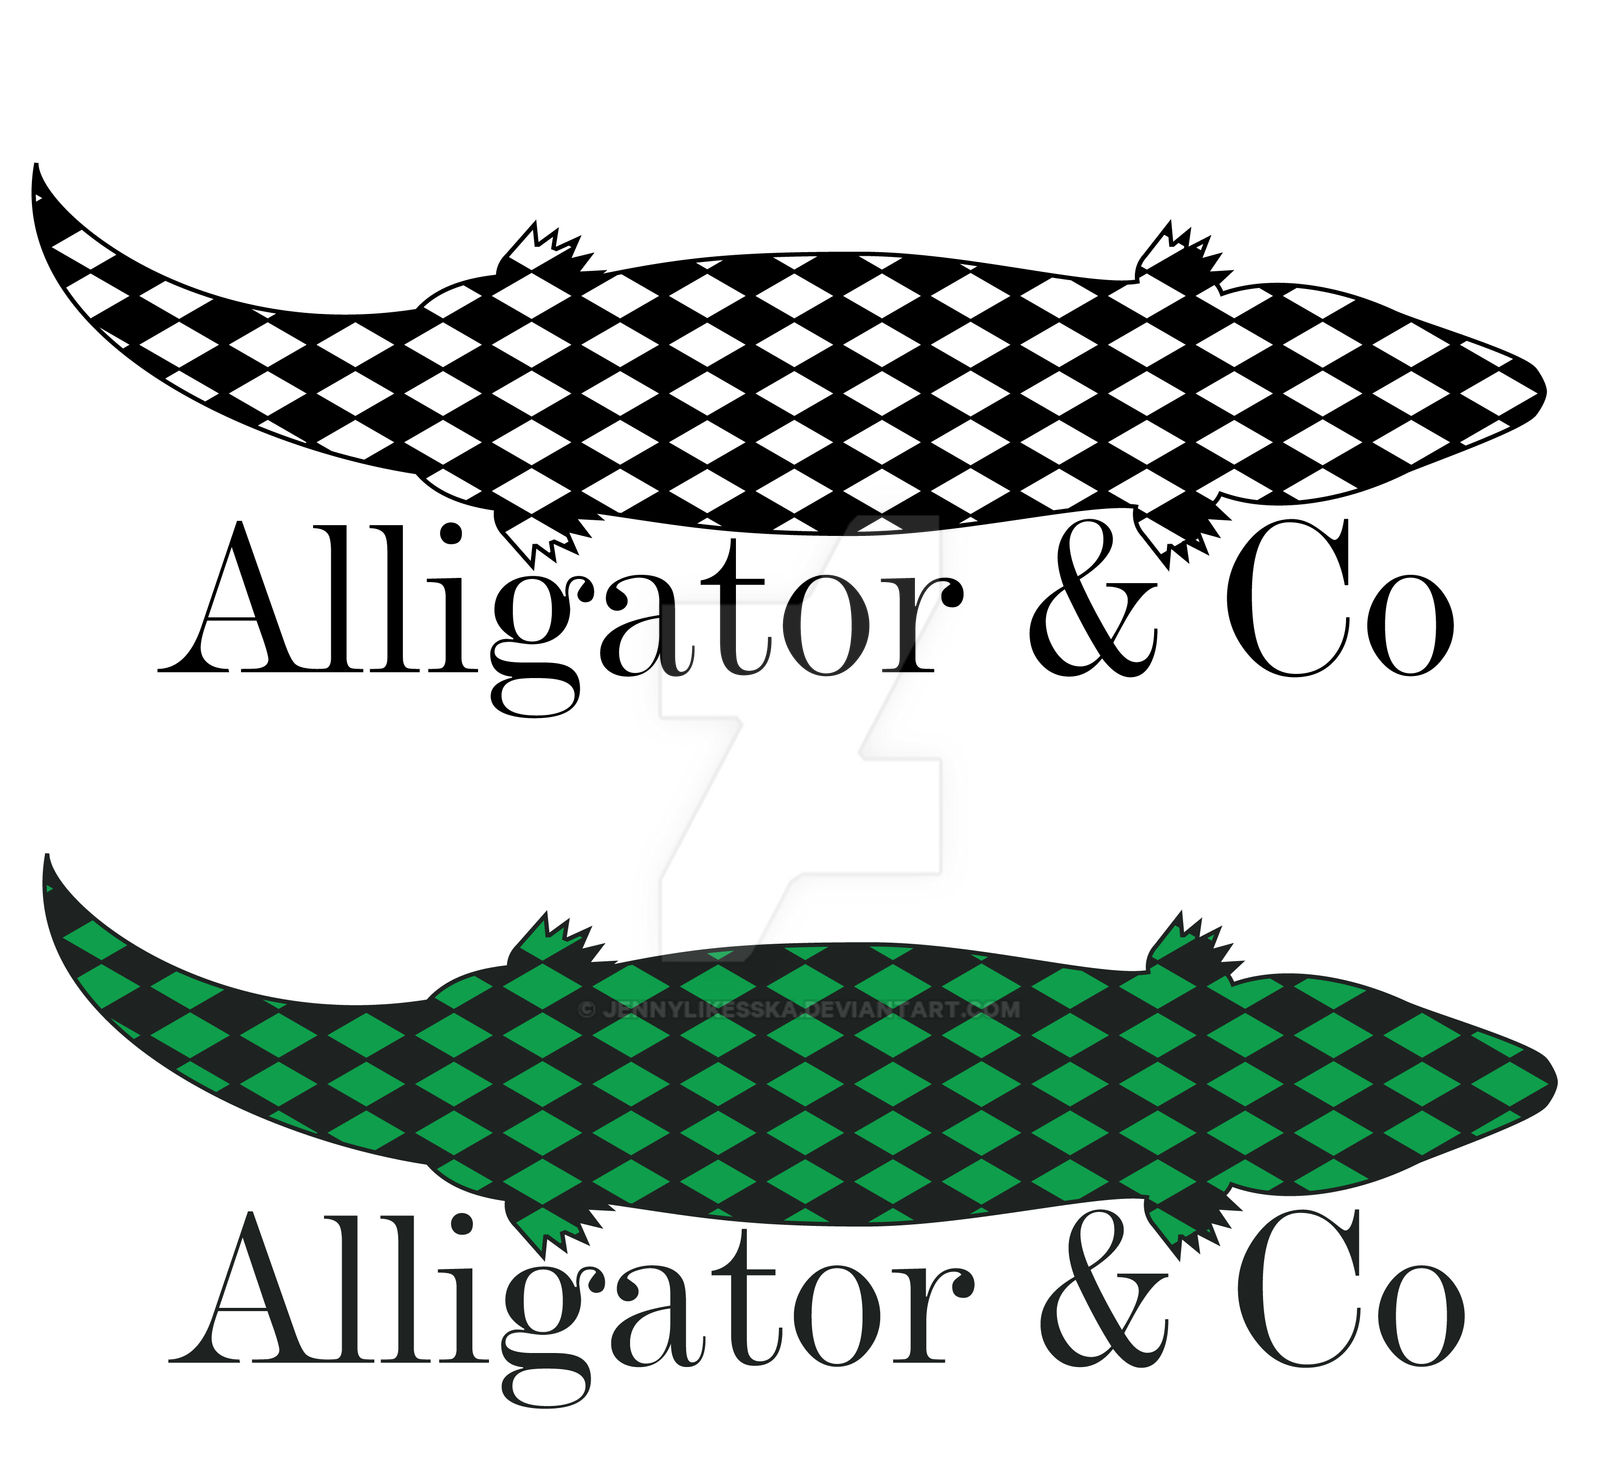 Alligator and Co Logo (b/w and color)